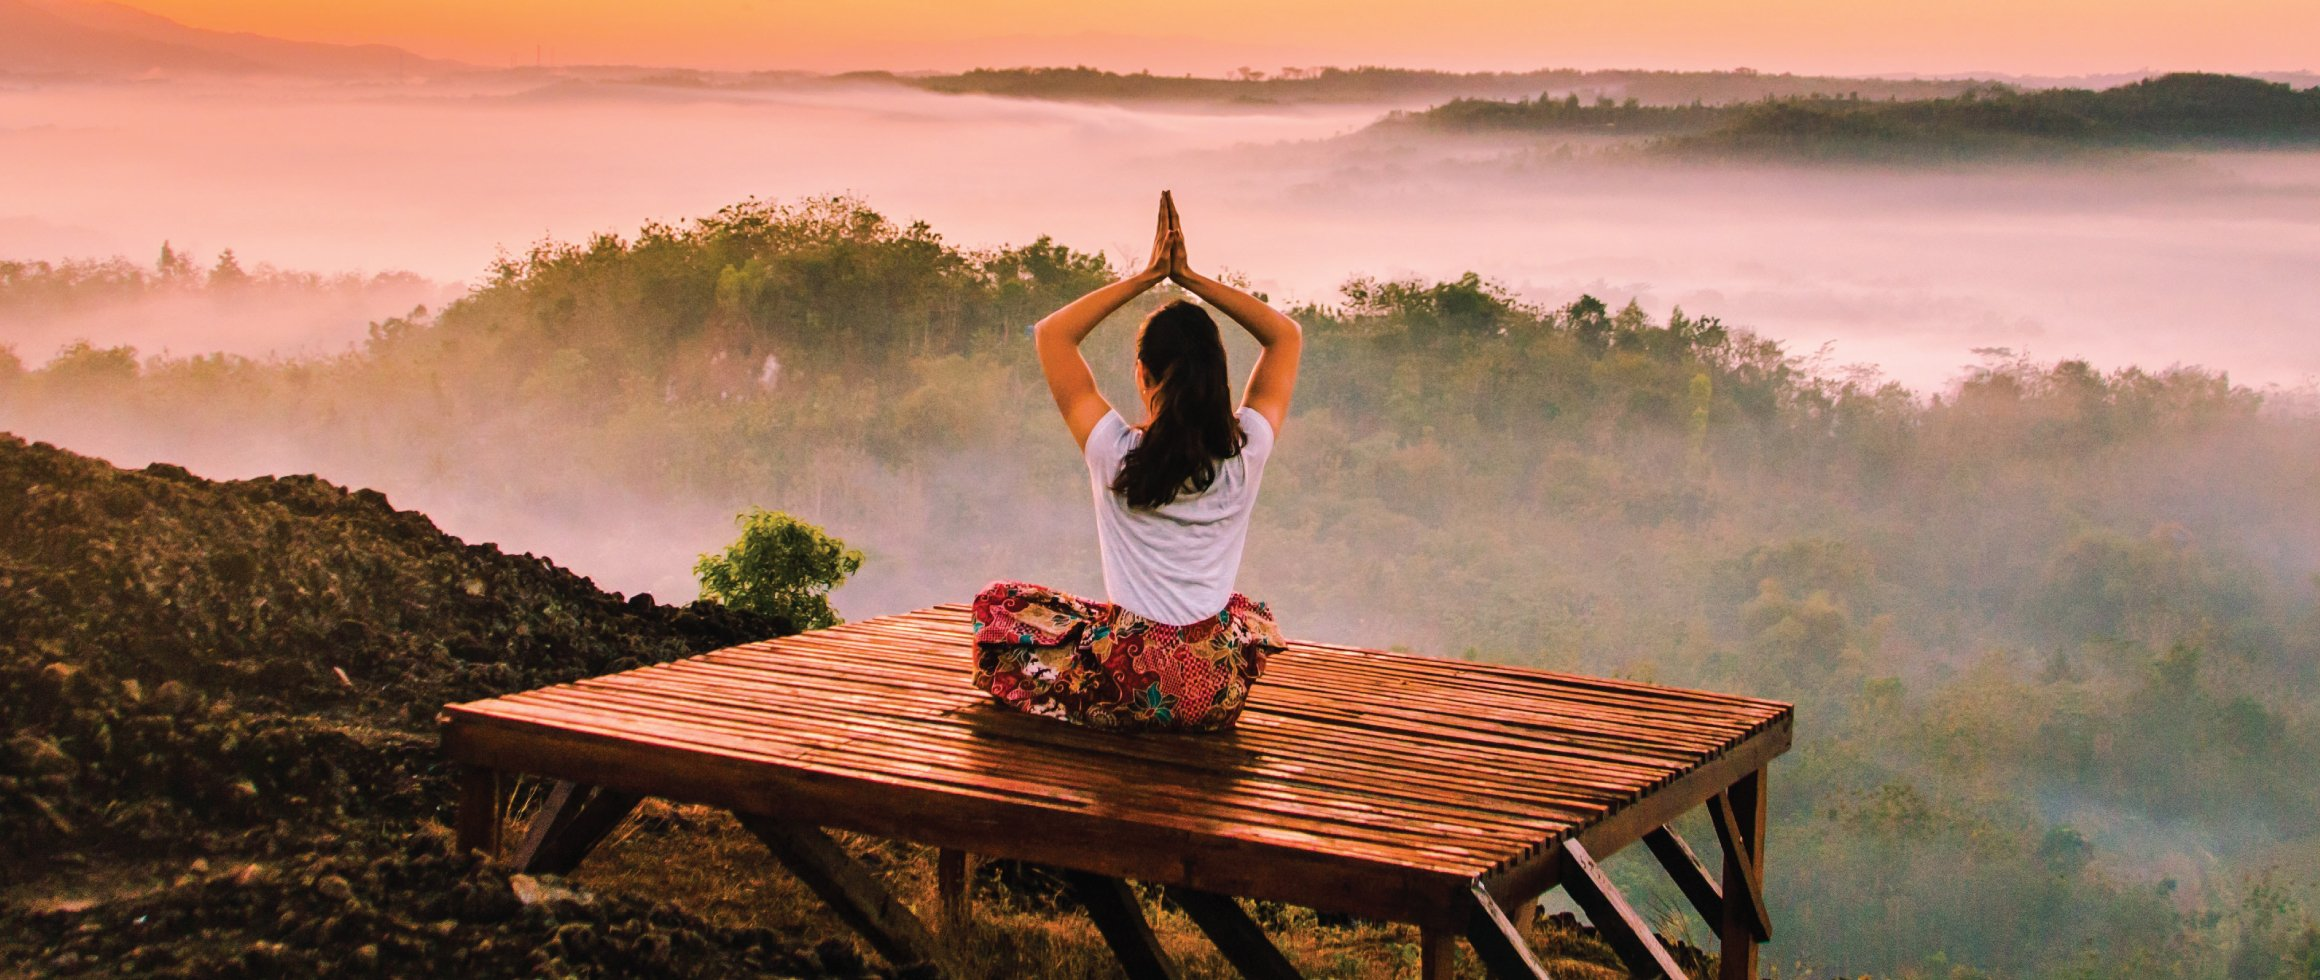 5 effortless meditation techniques everybody can do according to a mindfulness expert